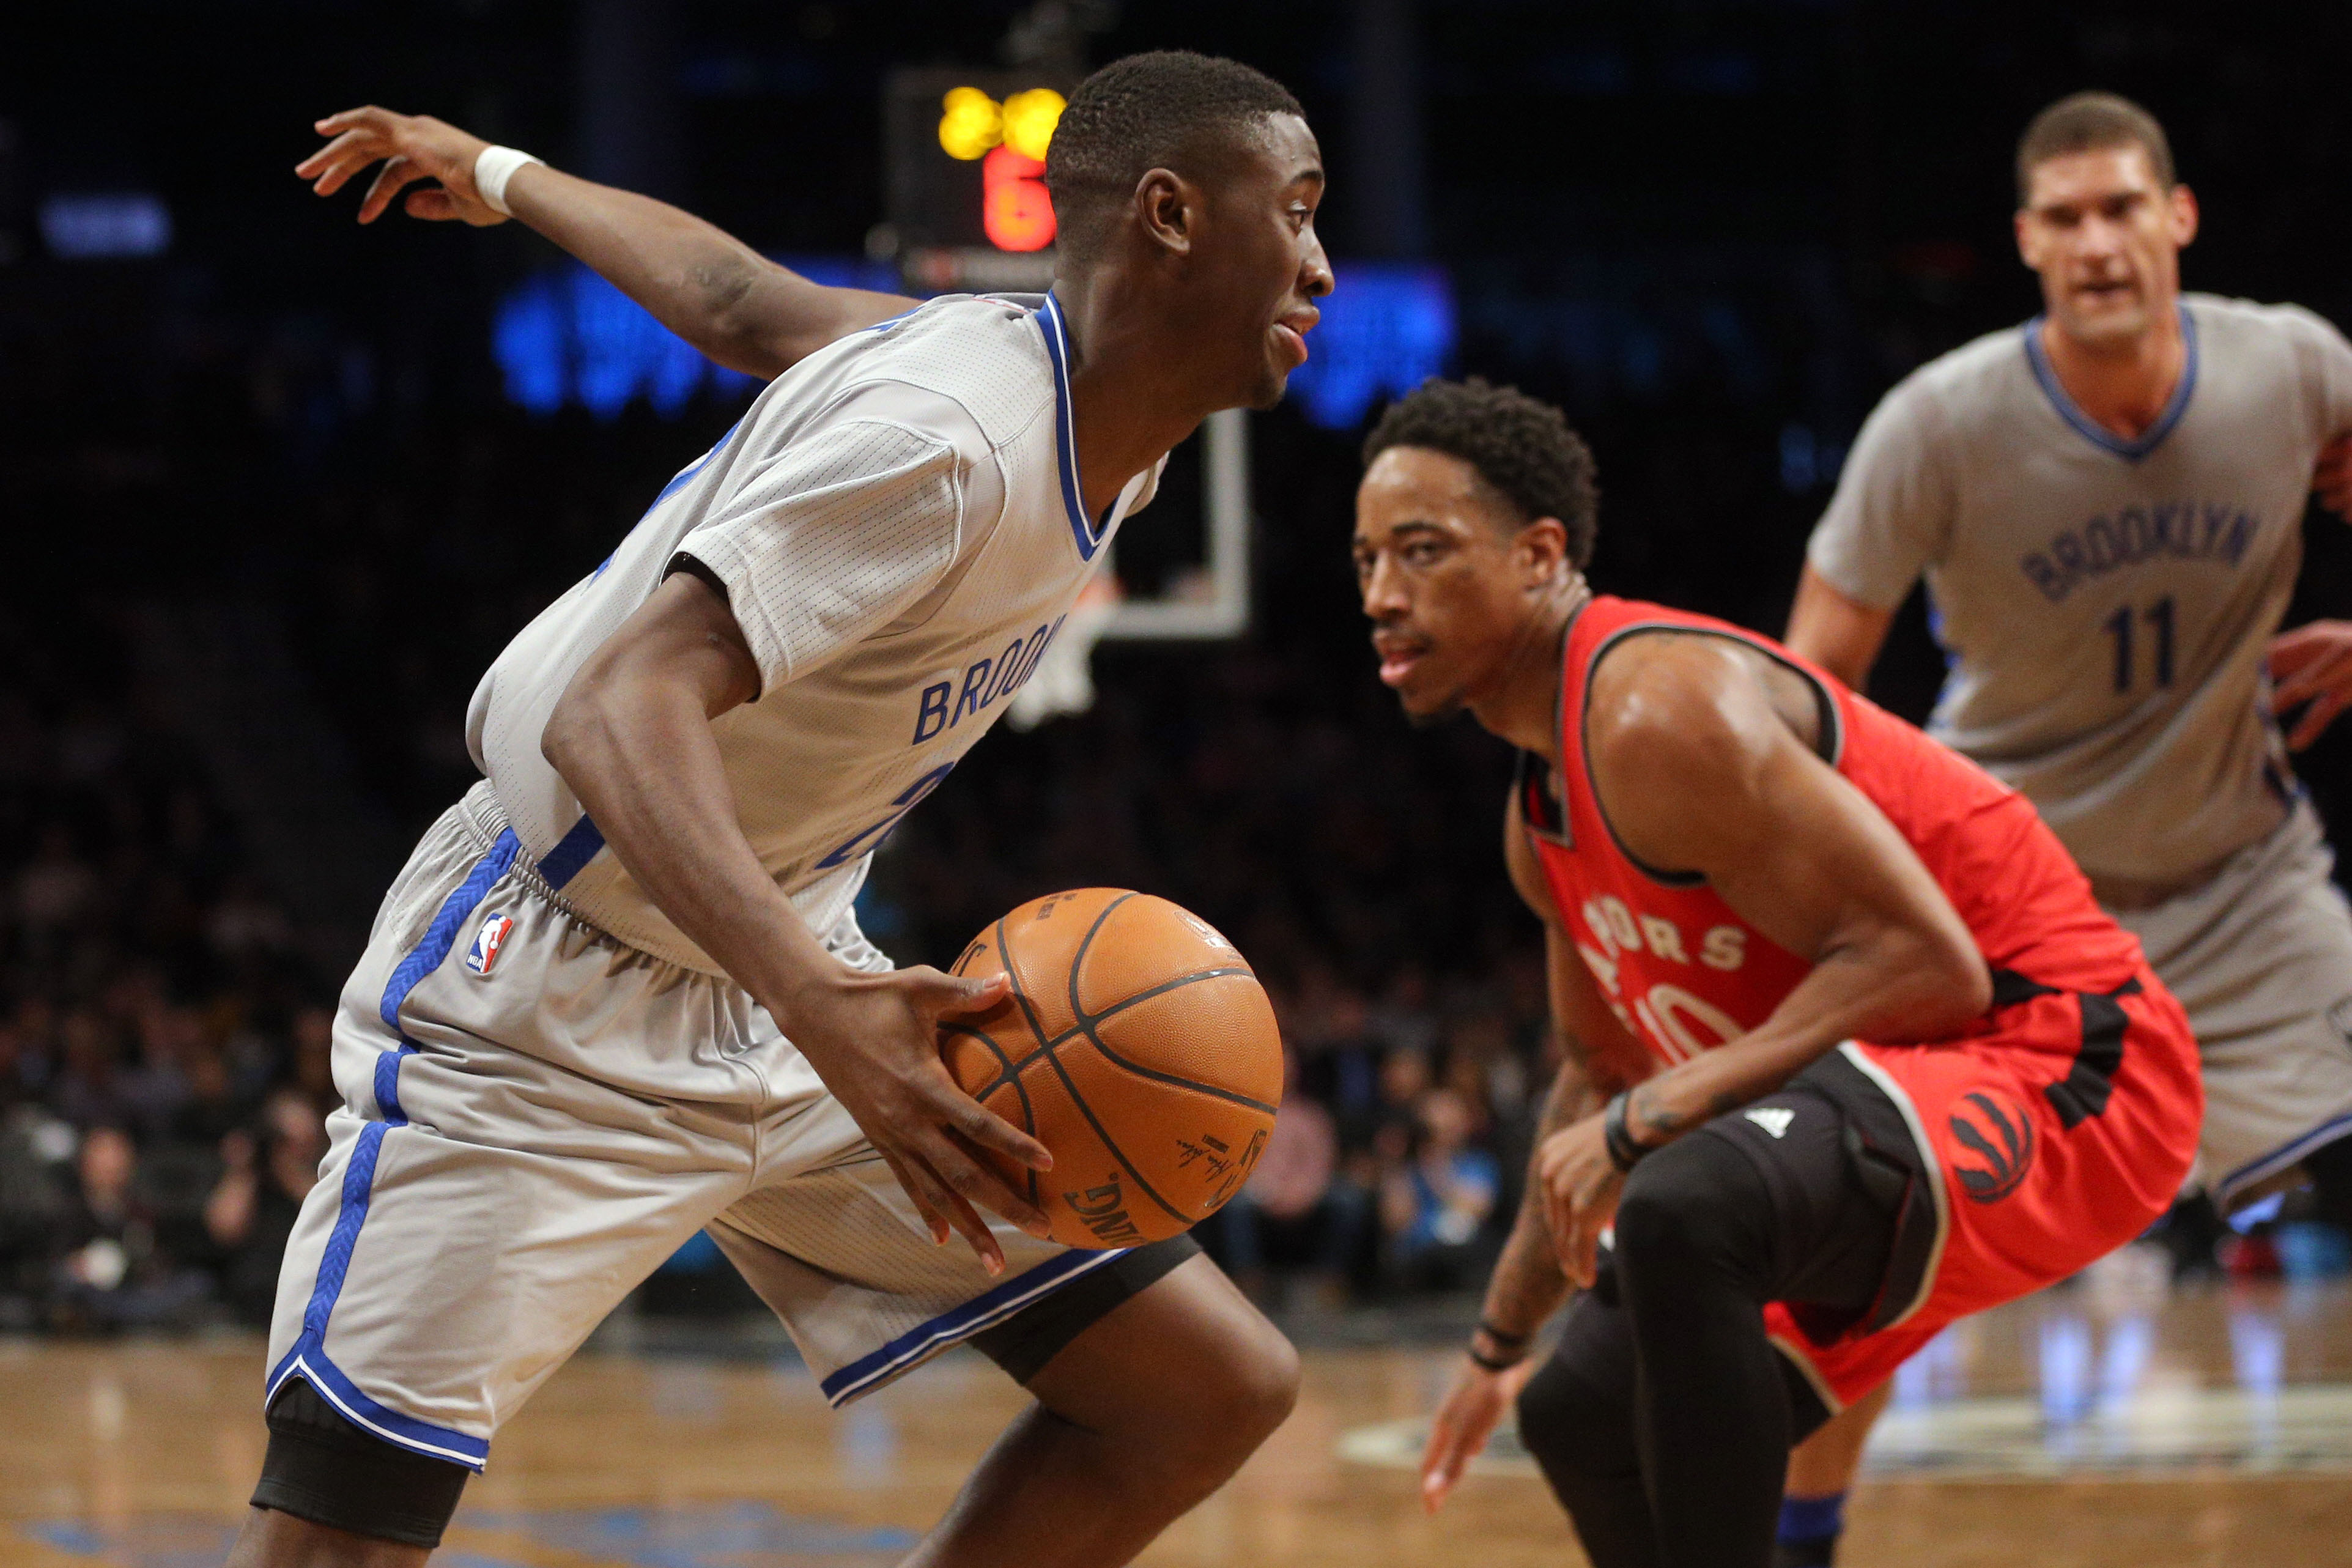 Jan 17, 2017; Brooklyn, NY, USA; Brooklyn Nets shooting guard Caris LeVert (22) drives past Toronto Raptors shooting guard DeMar DeRozan (10) during the third quarter at Barclays Center. Mandatory Credit: Brad Penner-USA TODAY Sports